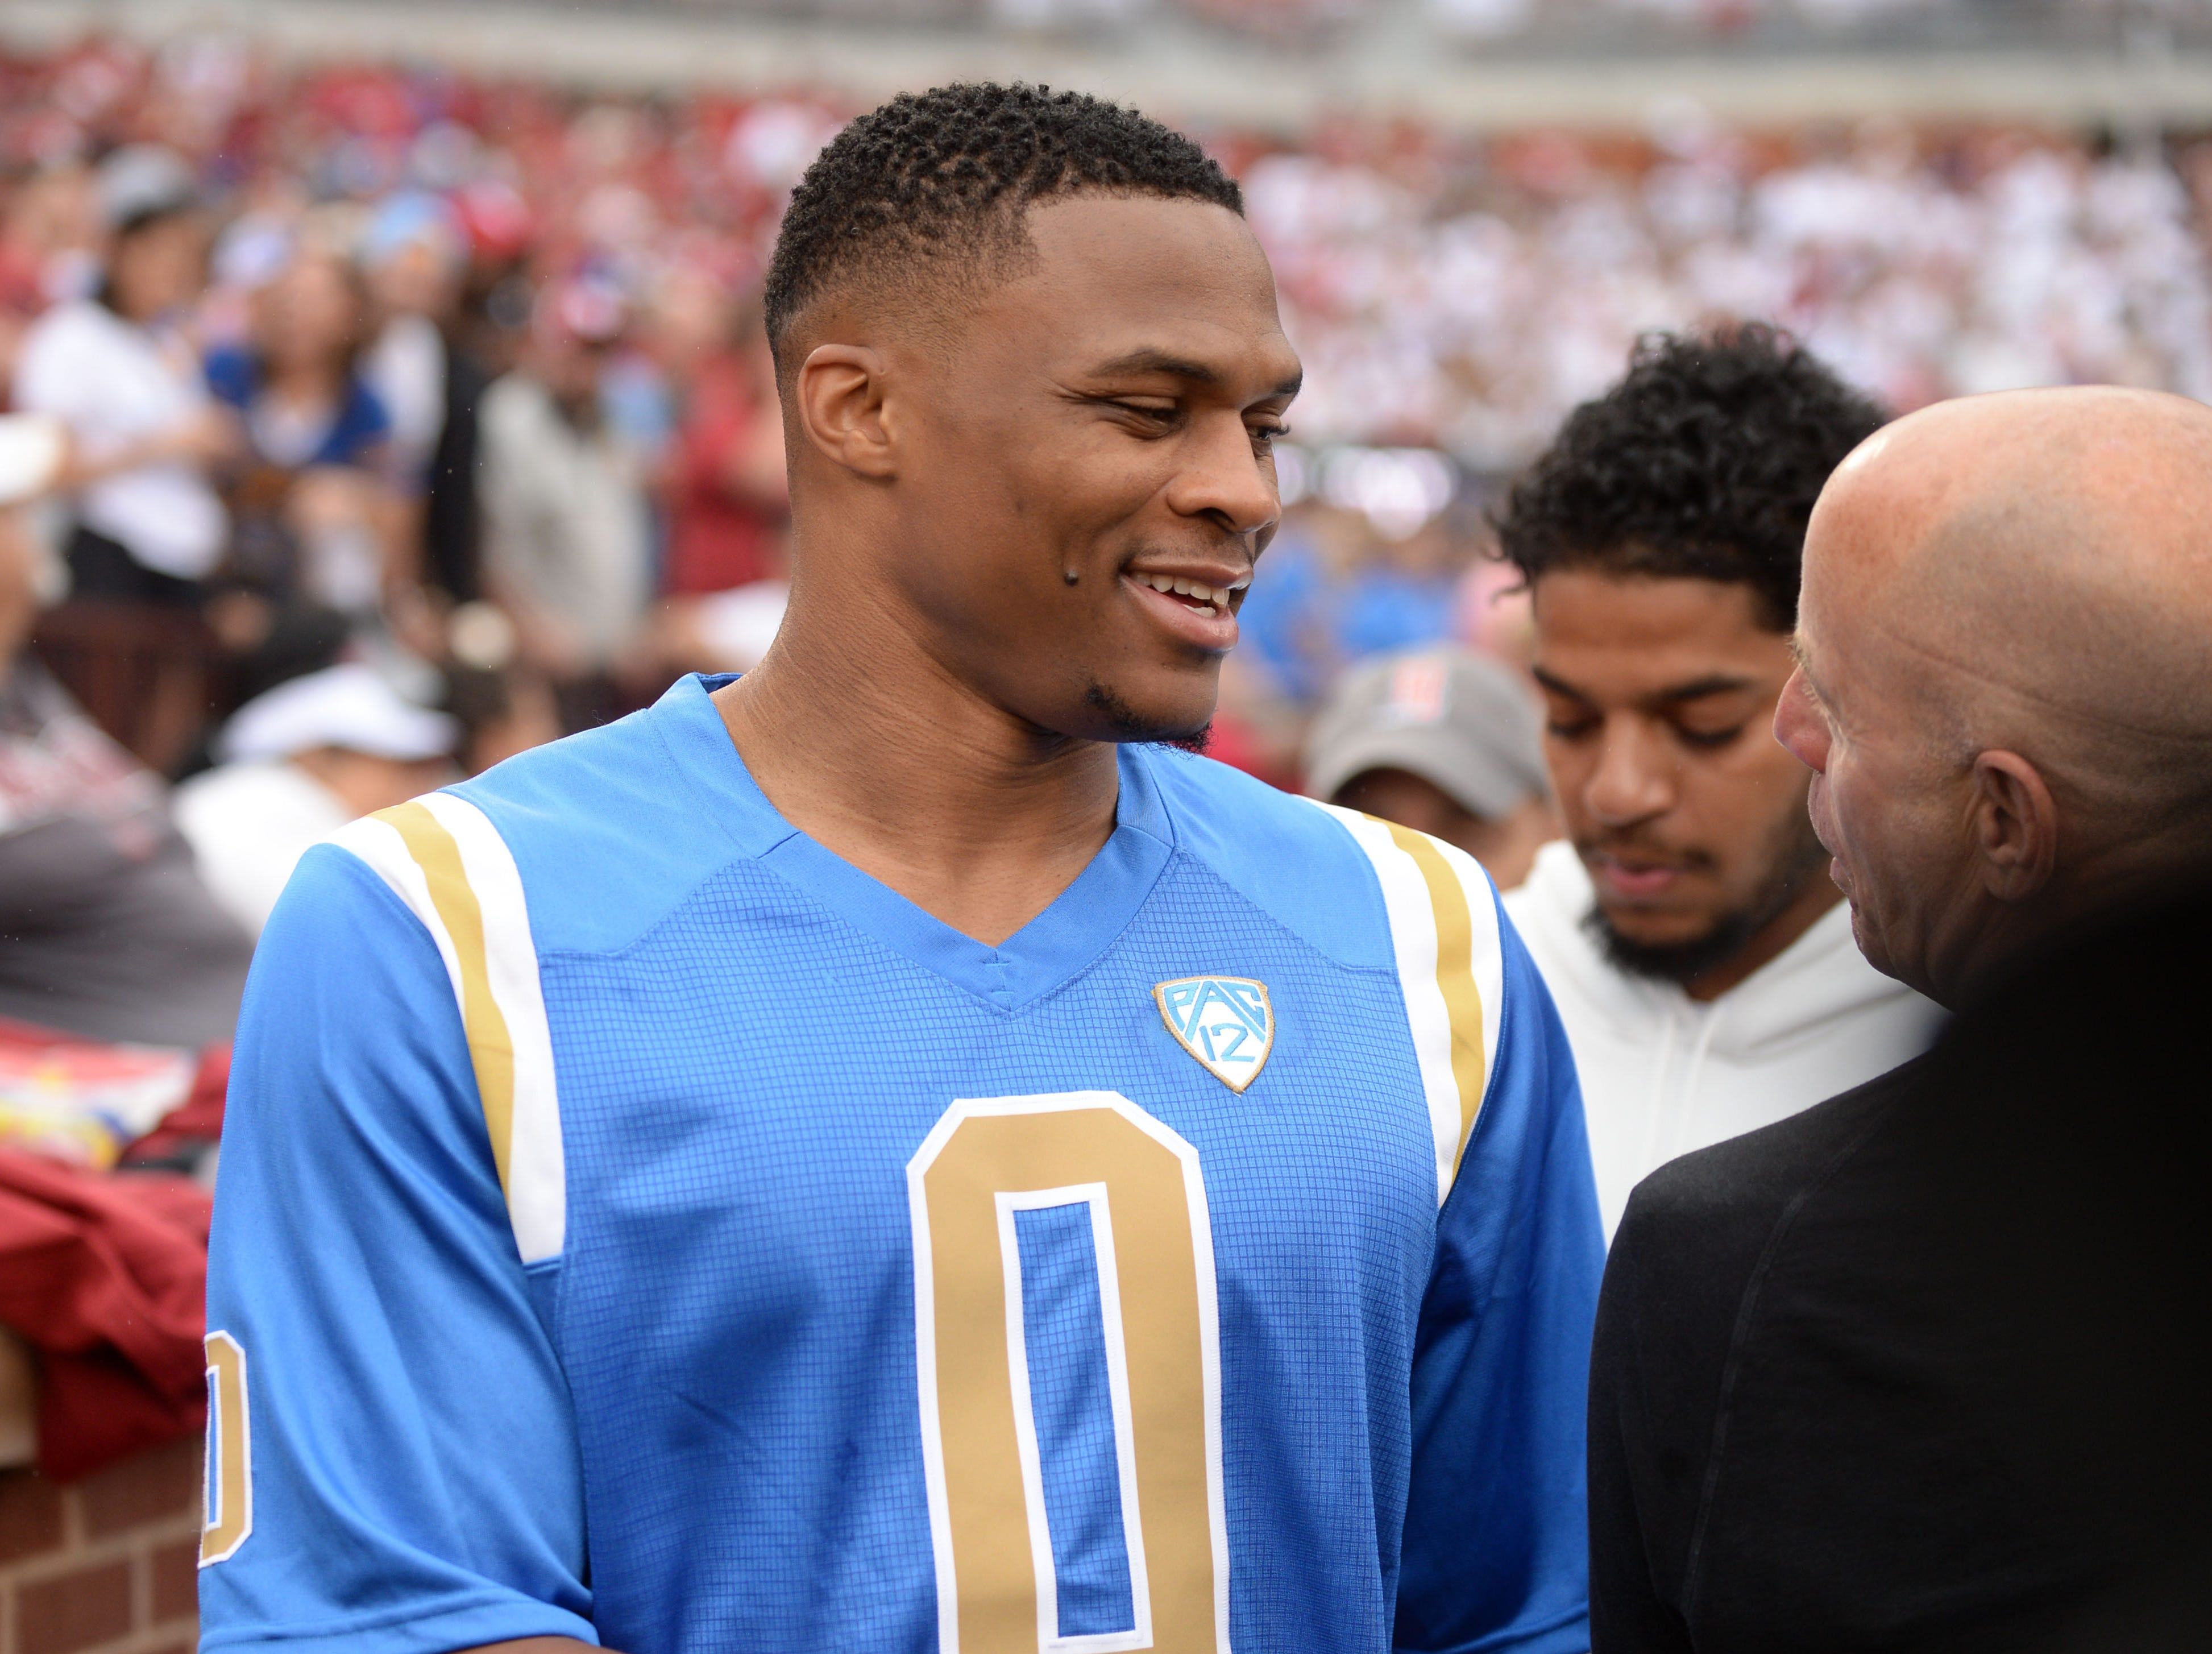 Week 2: Oklahoma City Thunder player Russell Westbrook is seen on the sideline during a game between the Oklahoma Sooners and the UCLA Bruins.